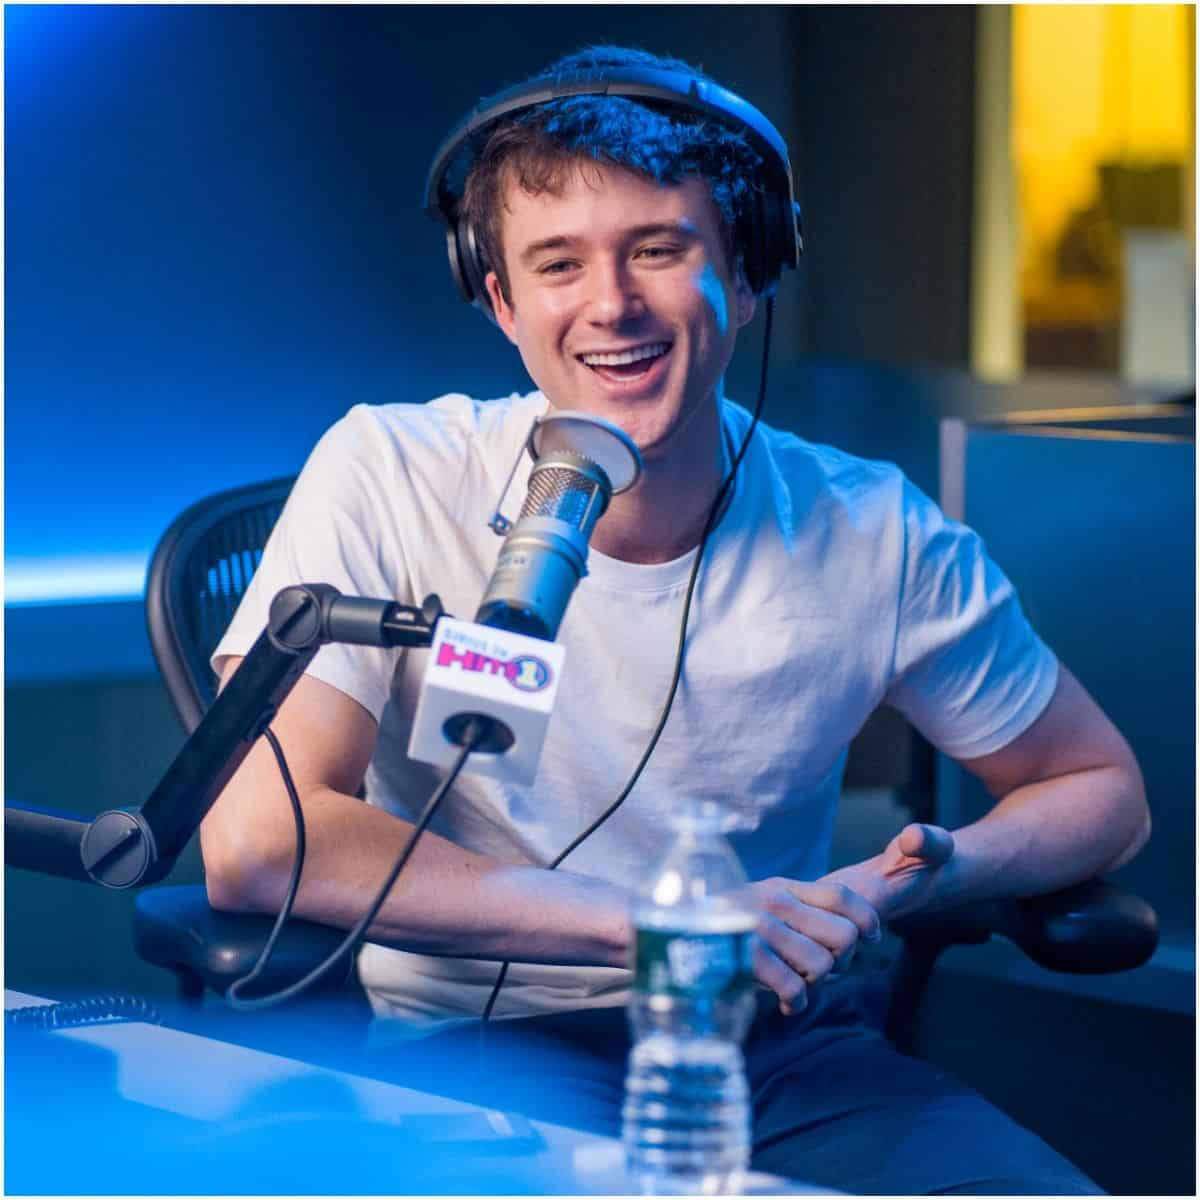 what is the net worth of Alec Benjamin